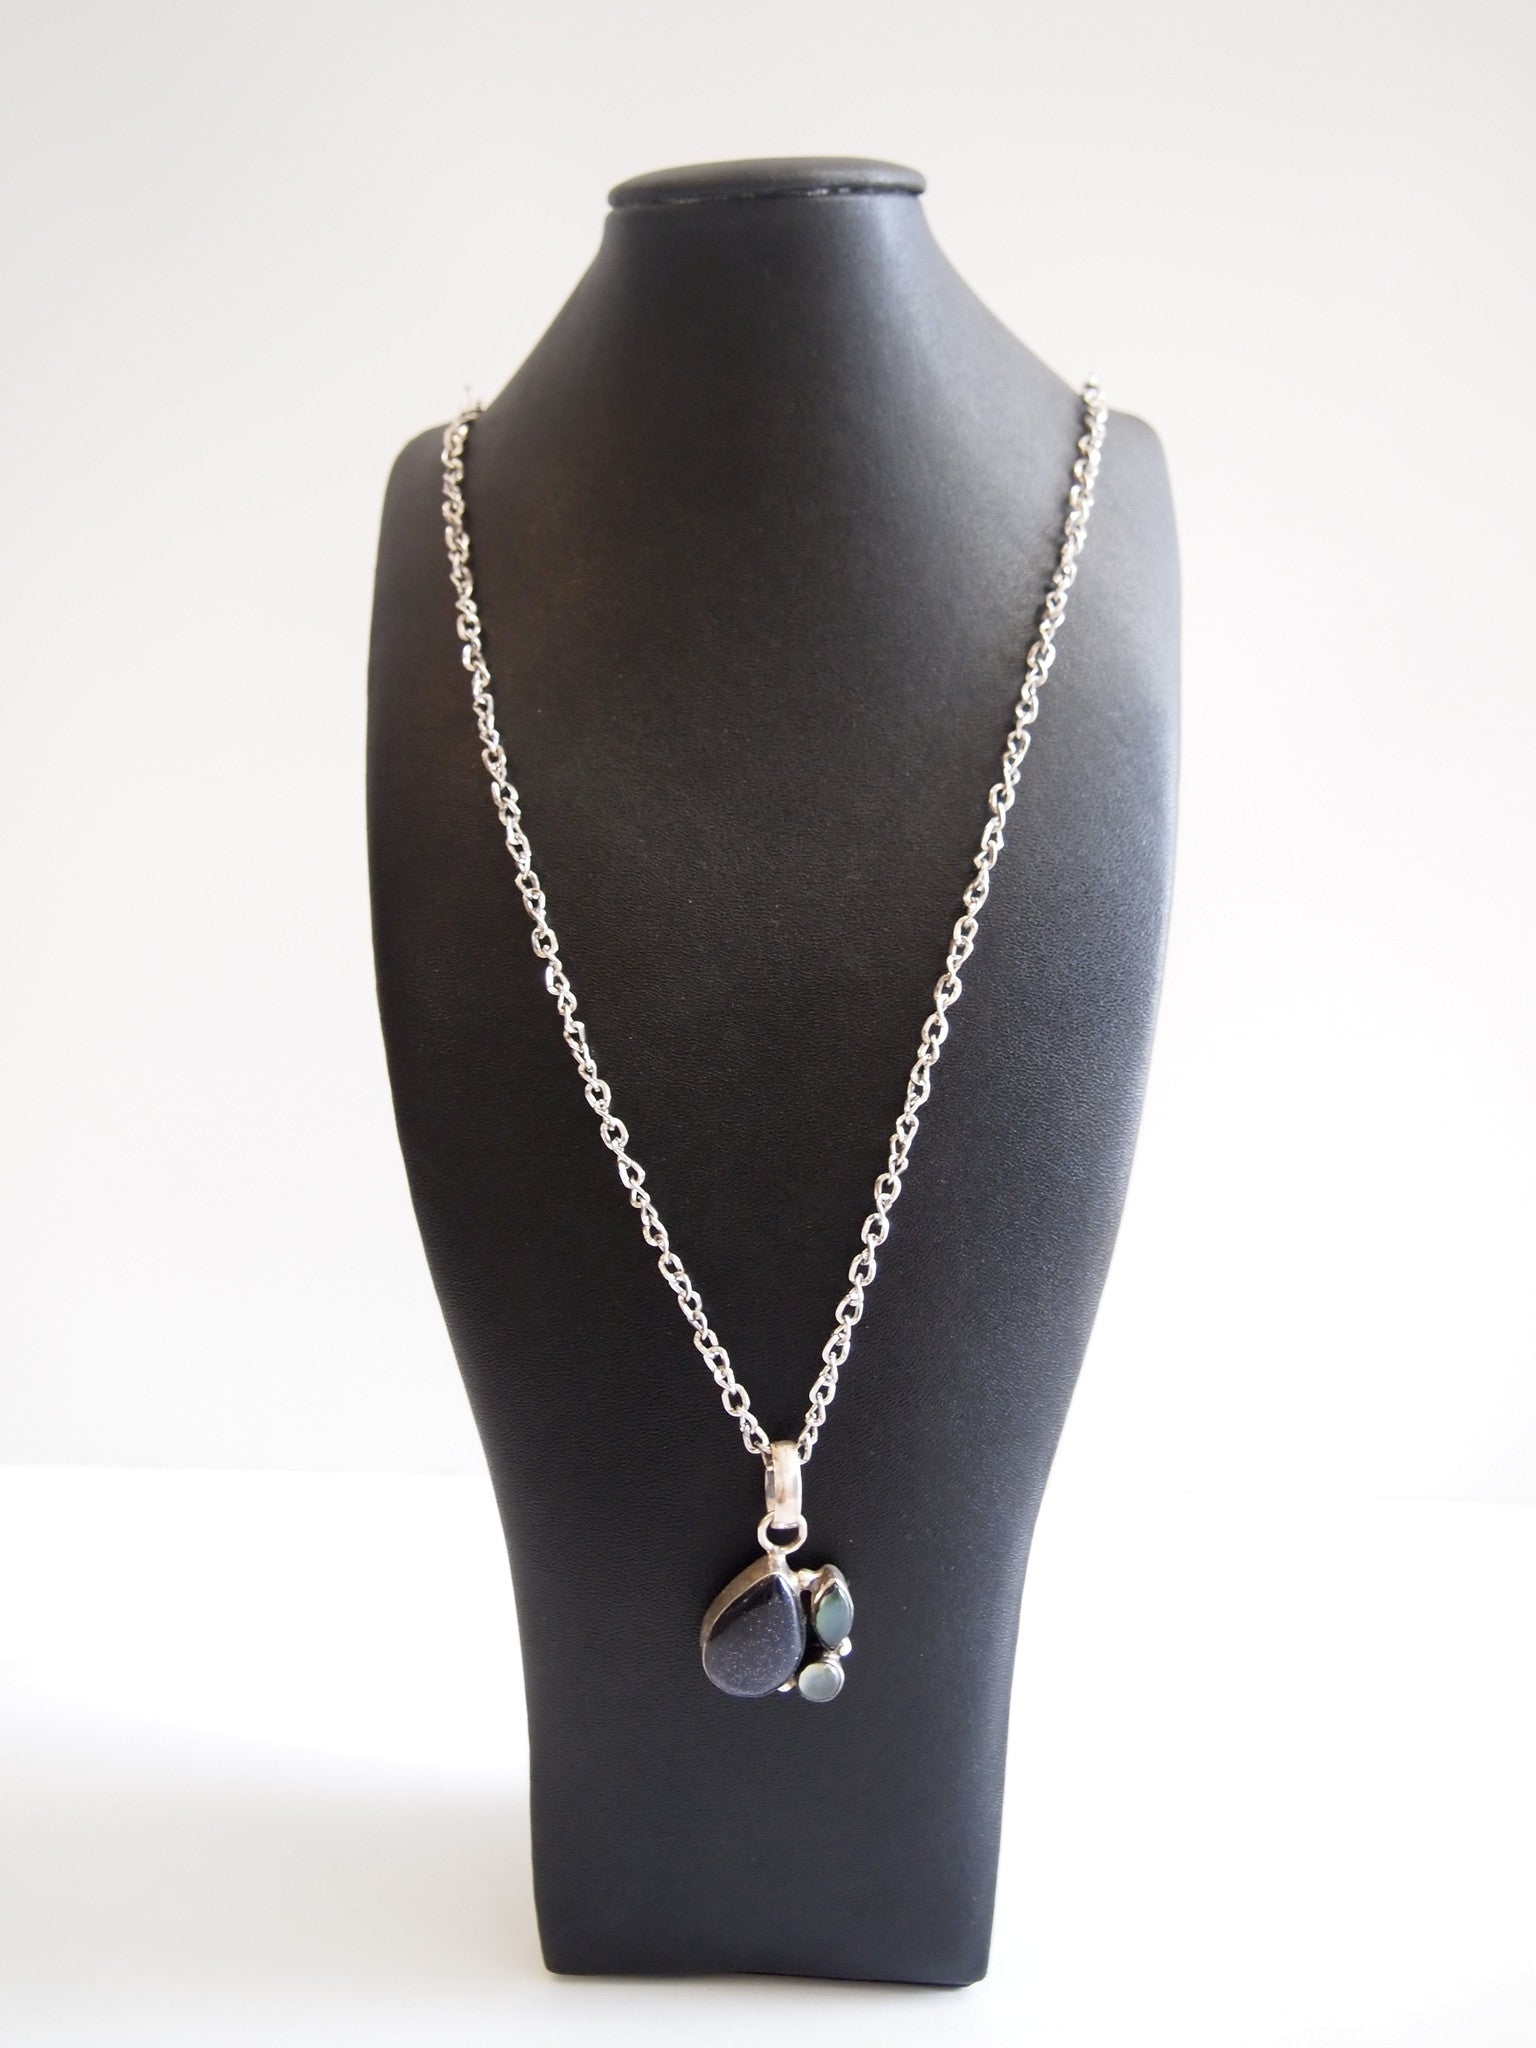 Handmade necklace with sunstone chalcedony onyx with silver rhodium chain